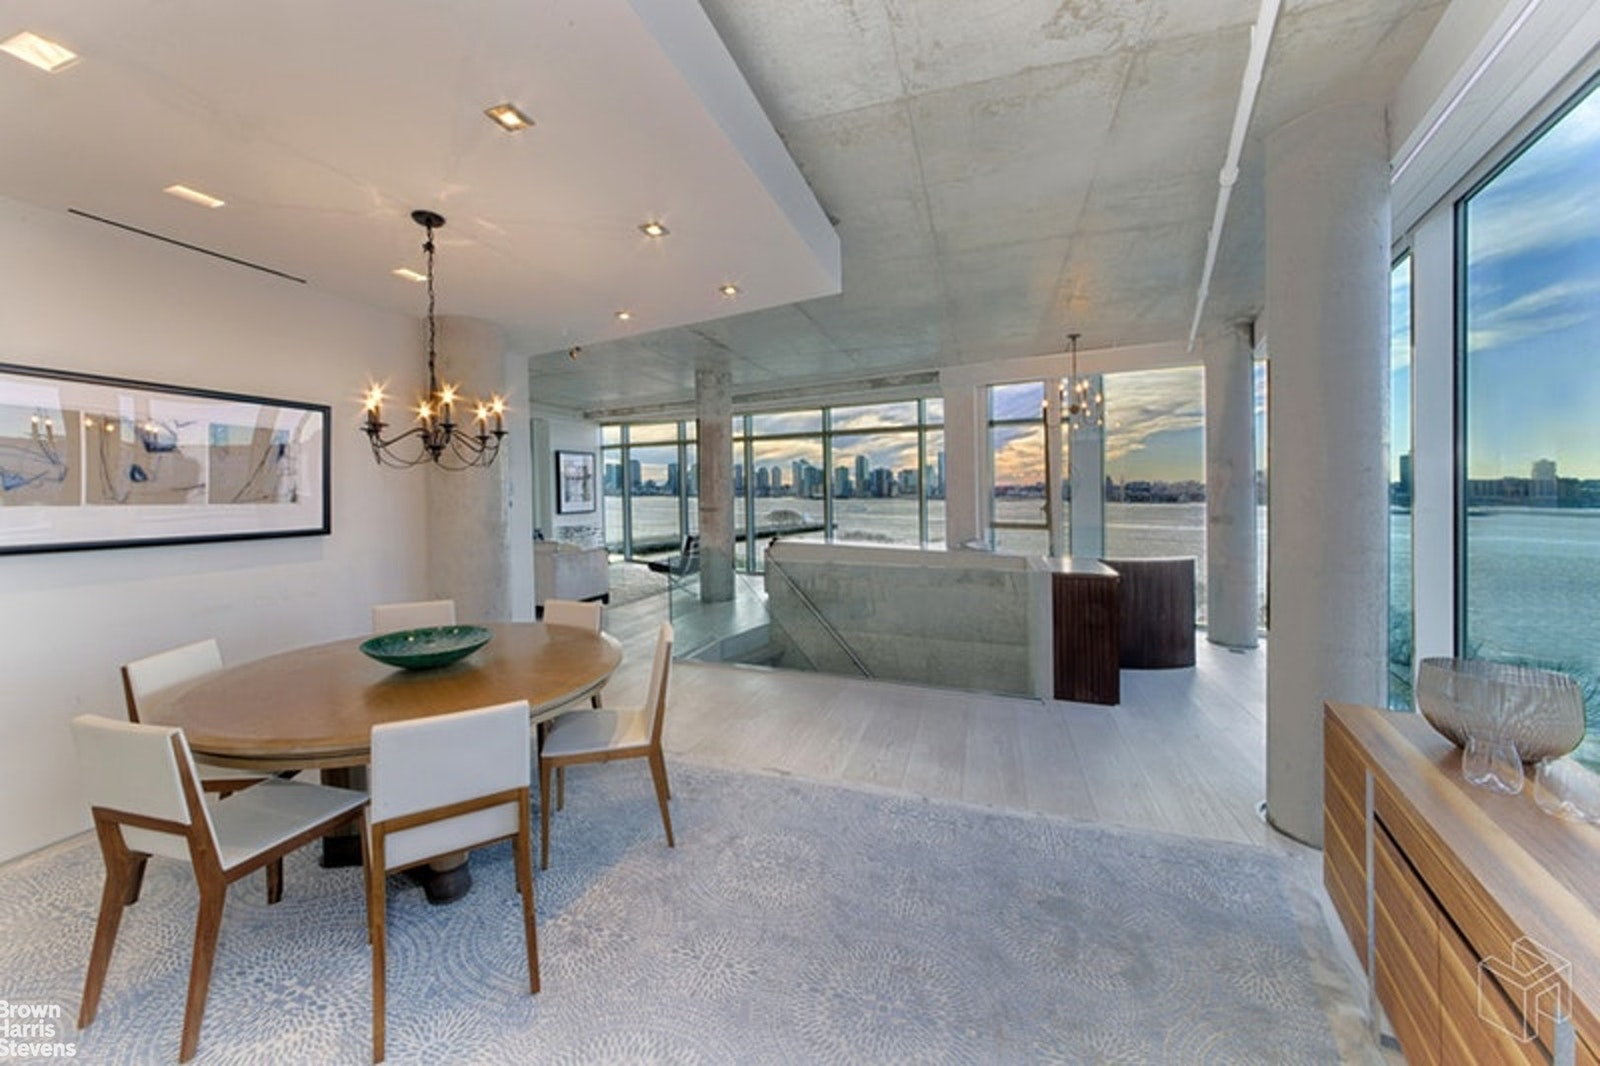 173 Perry Street 6/7, West Village, NYC, 10014, $9,750,000, Property For Sale, Halstead Real Estate, Photo 4